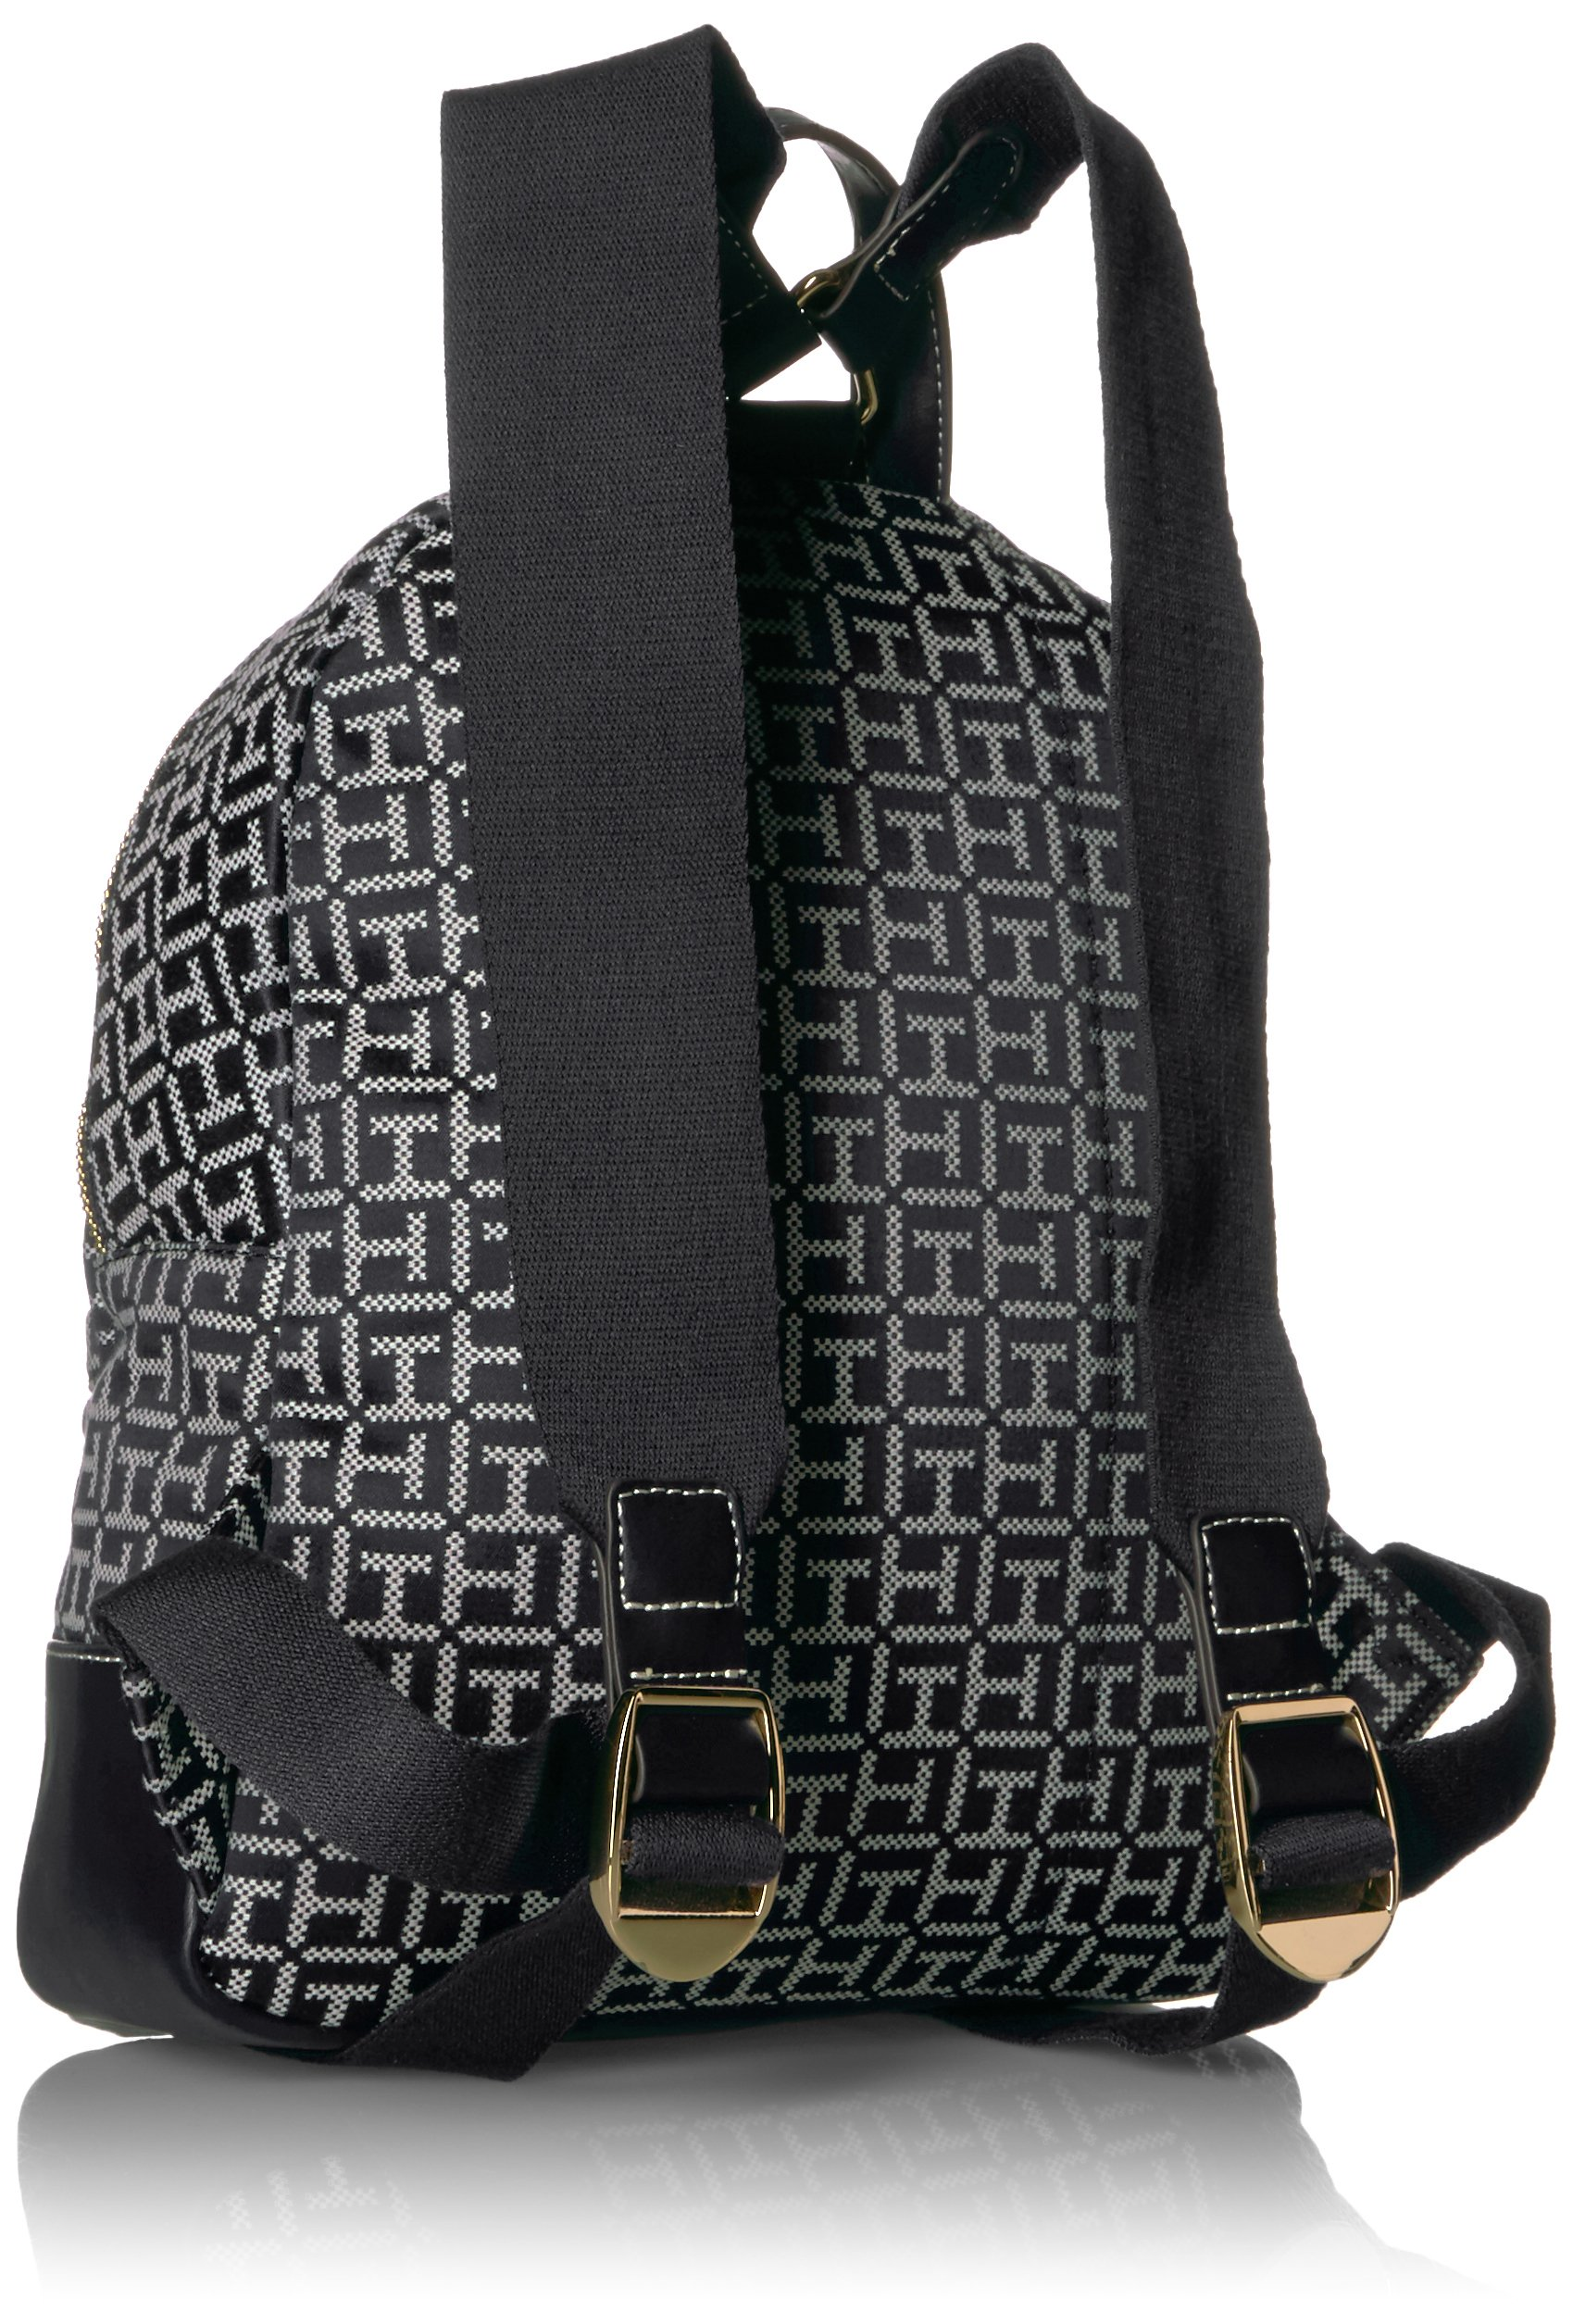 Tommy Hilfiger Women's Backpack Jaden, Black/White by Tommy Hilfiger (Image #2)